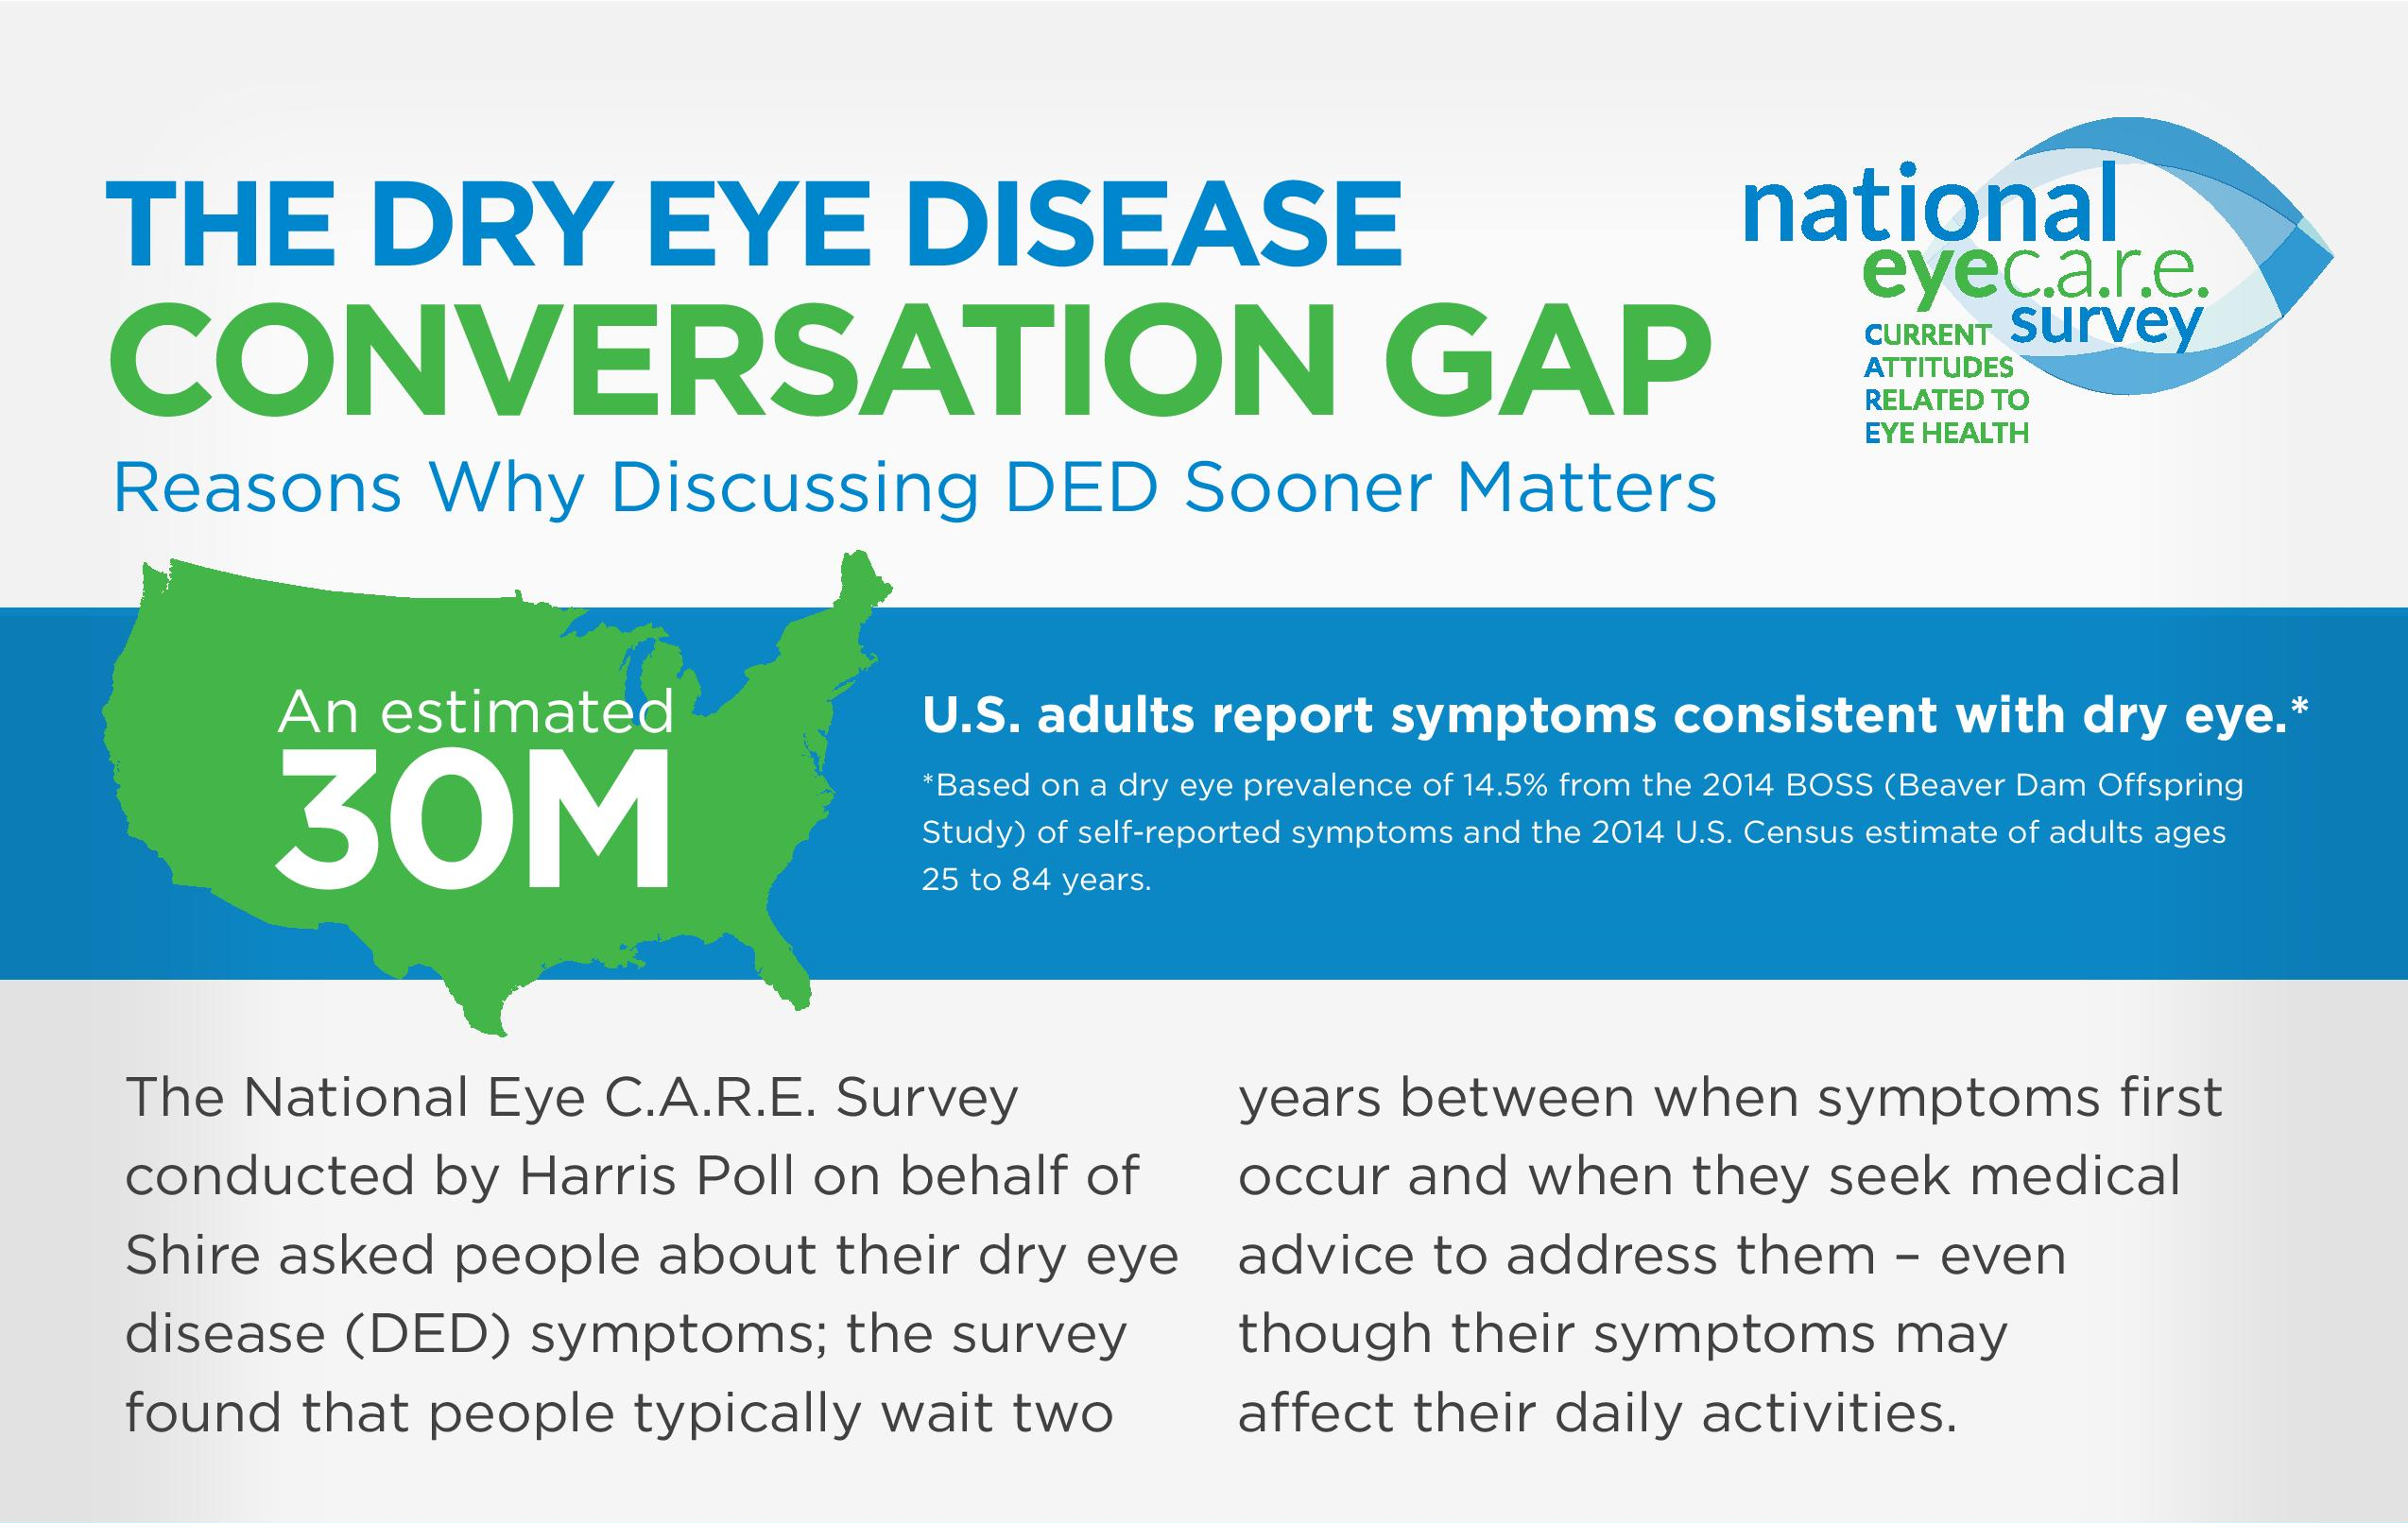 In 2015, the National Eye C.A.R.E. (Current Attitudes Related to Eye  health) Survey polled more than 1,200 adults about Dry Eye symptoms and how  it affects ...